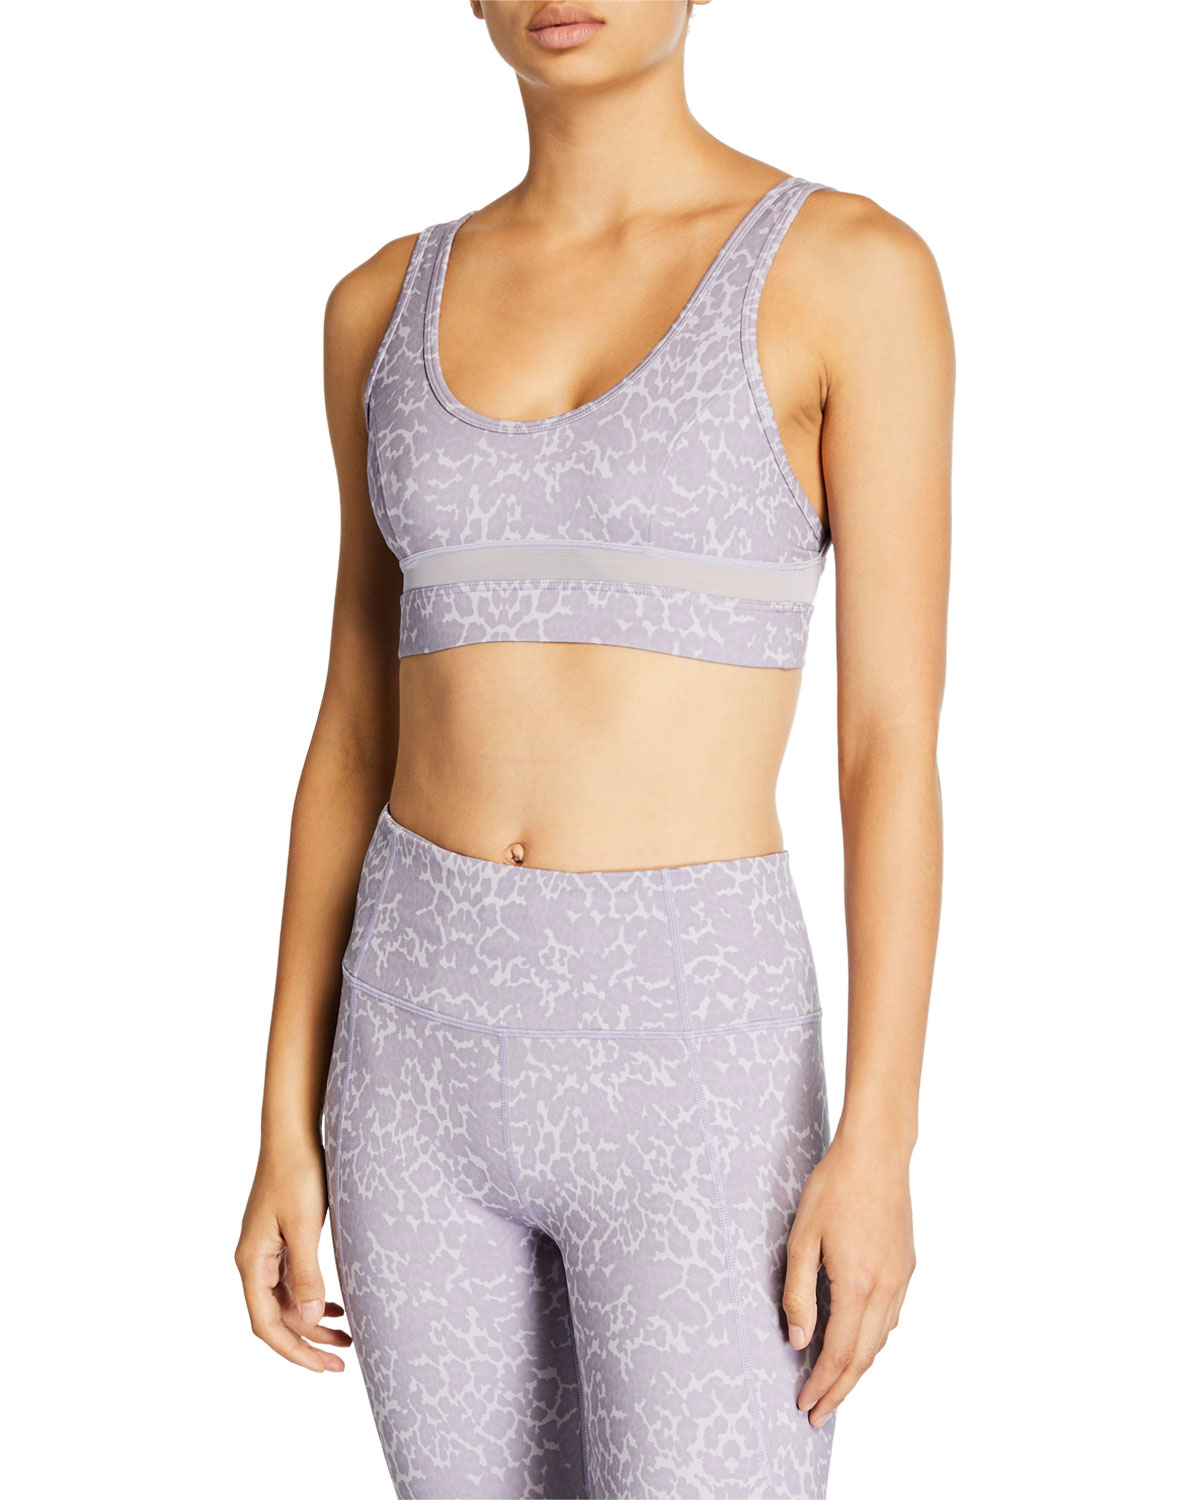 Varley Tops WILLOW LEOPARD-PRINT MESH SPORTS BRA